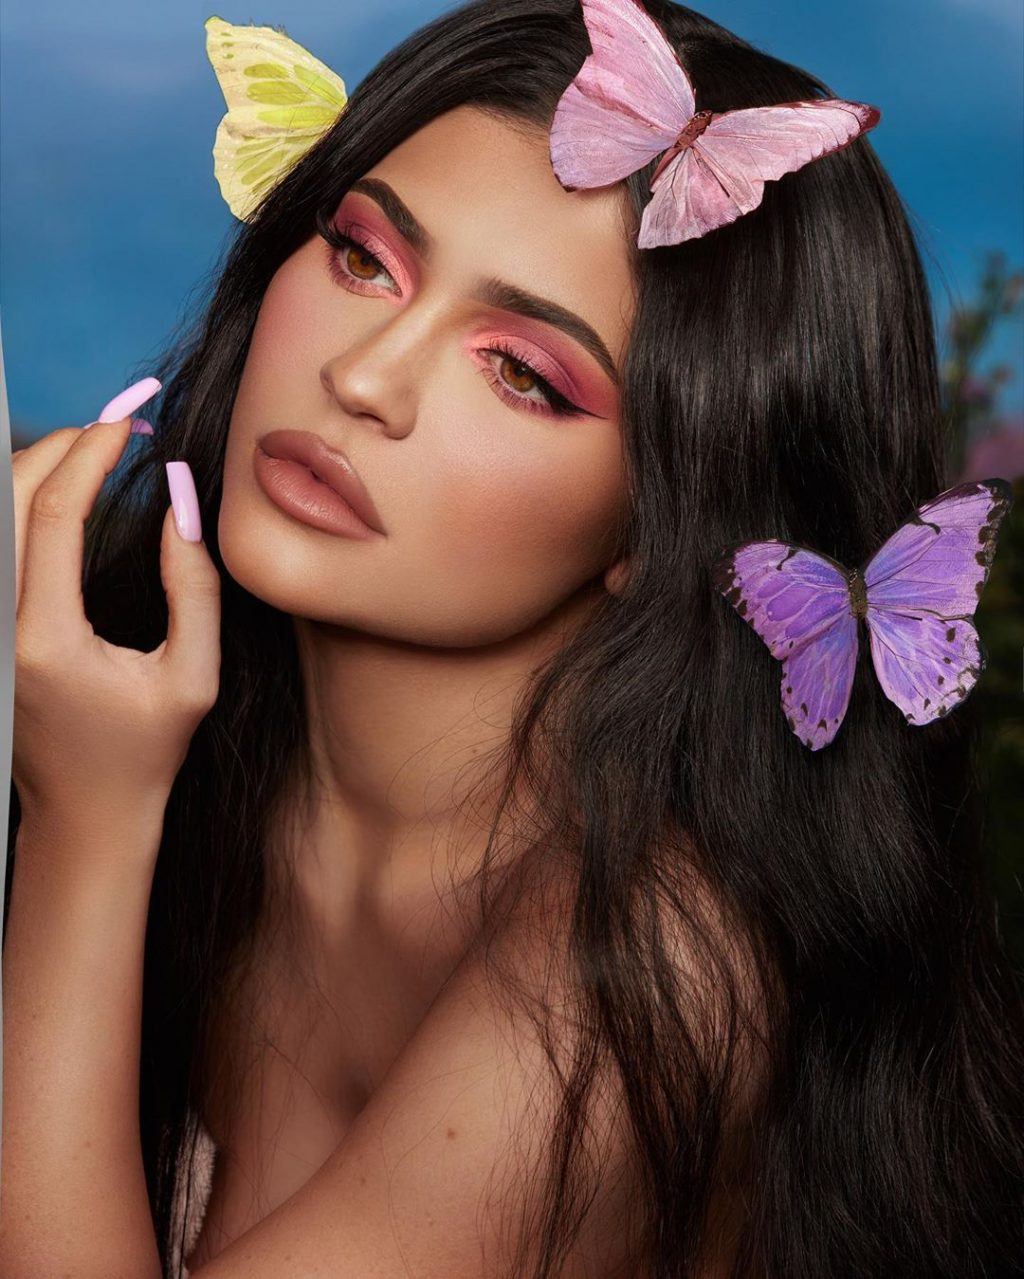 Extra Extra: Guess Where Kylie Jenner's Butterfly Filter Originated?